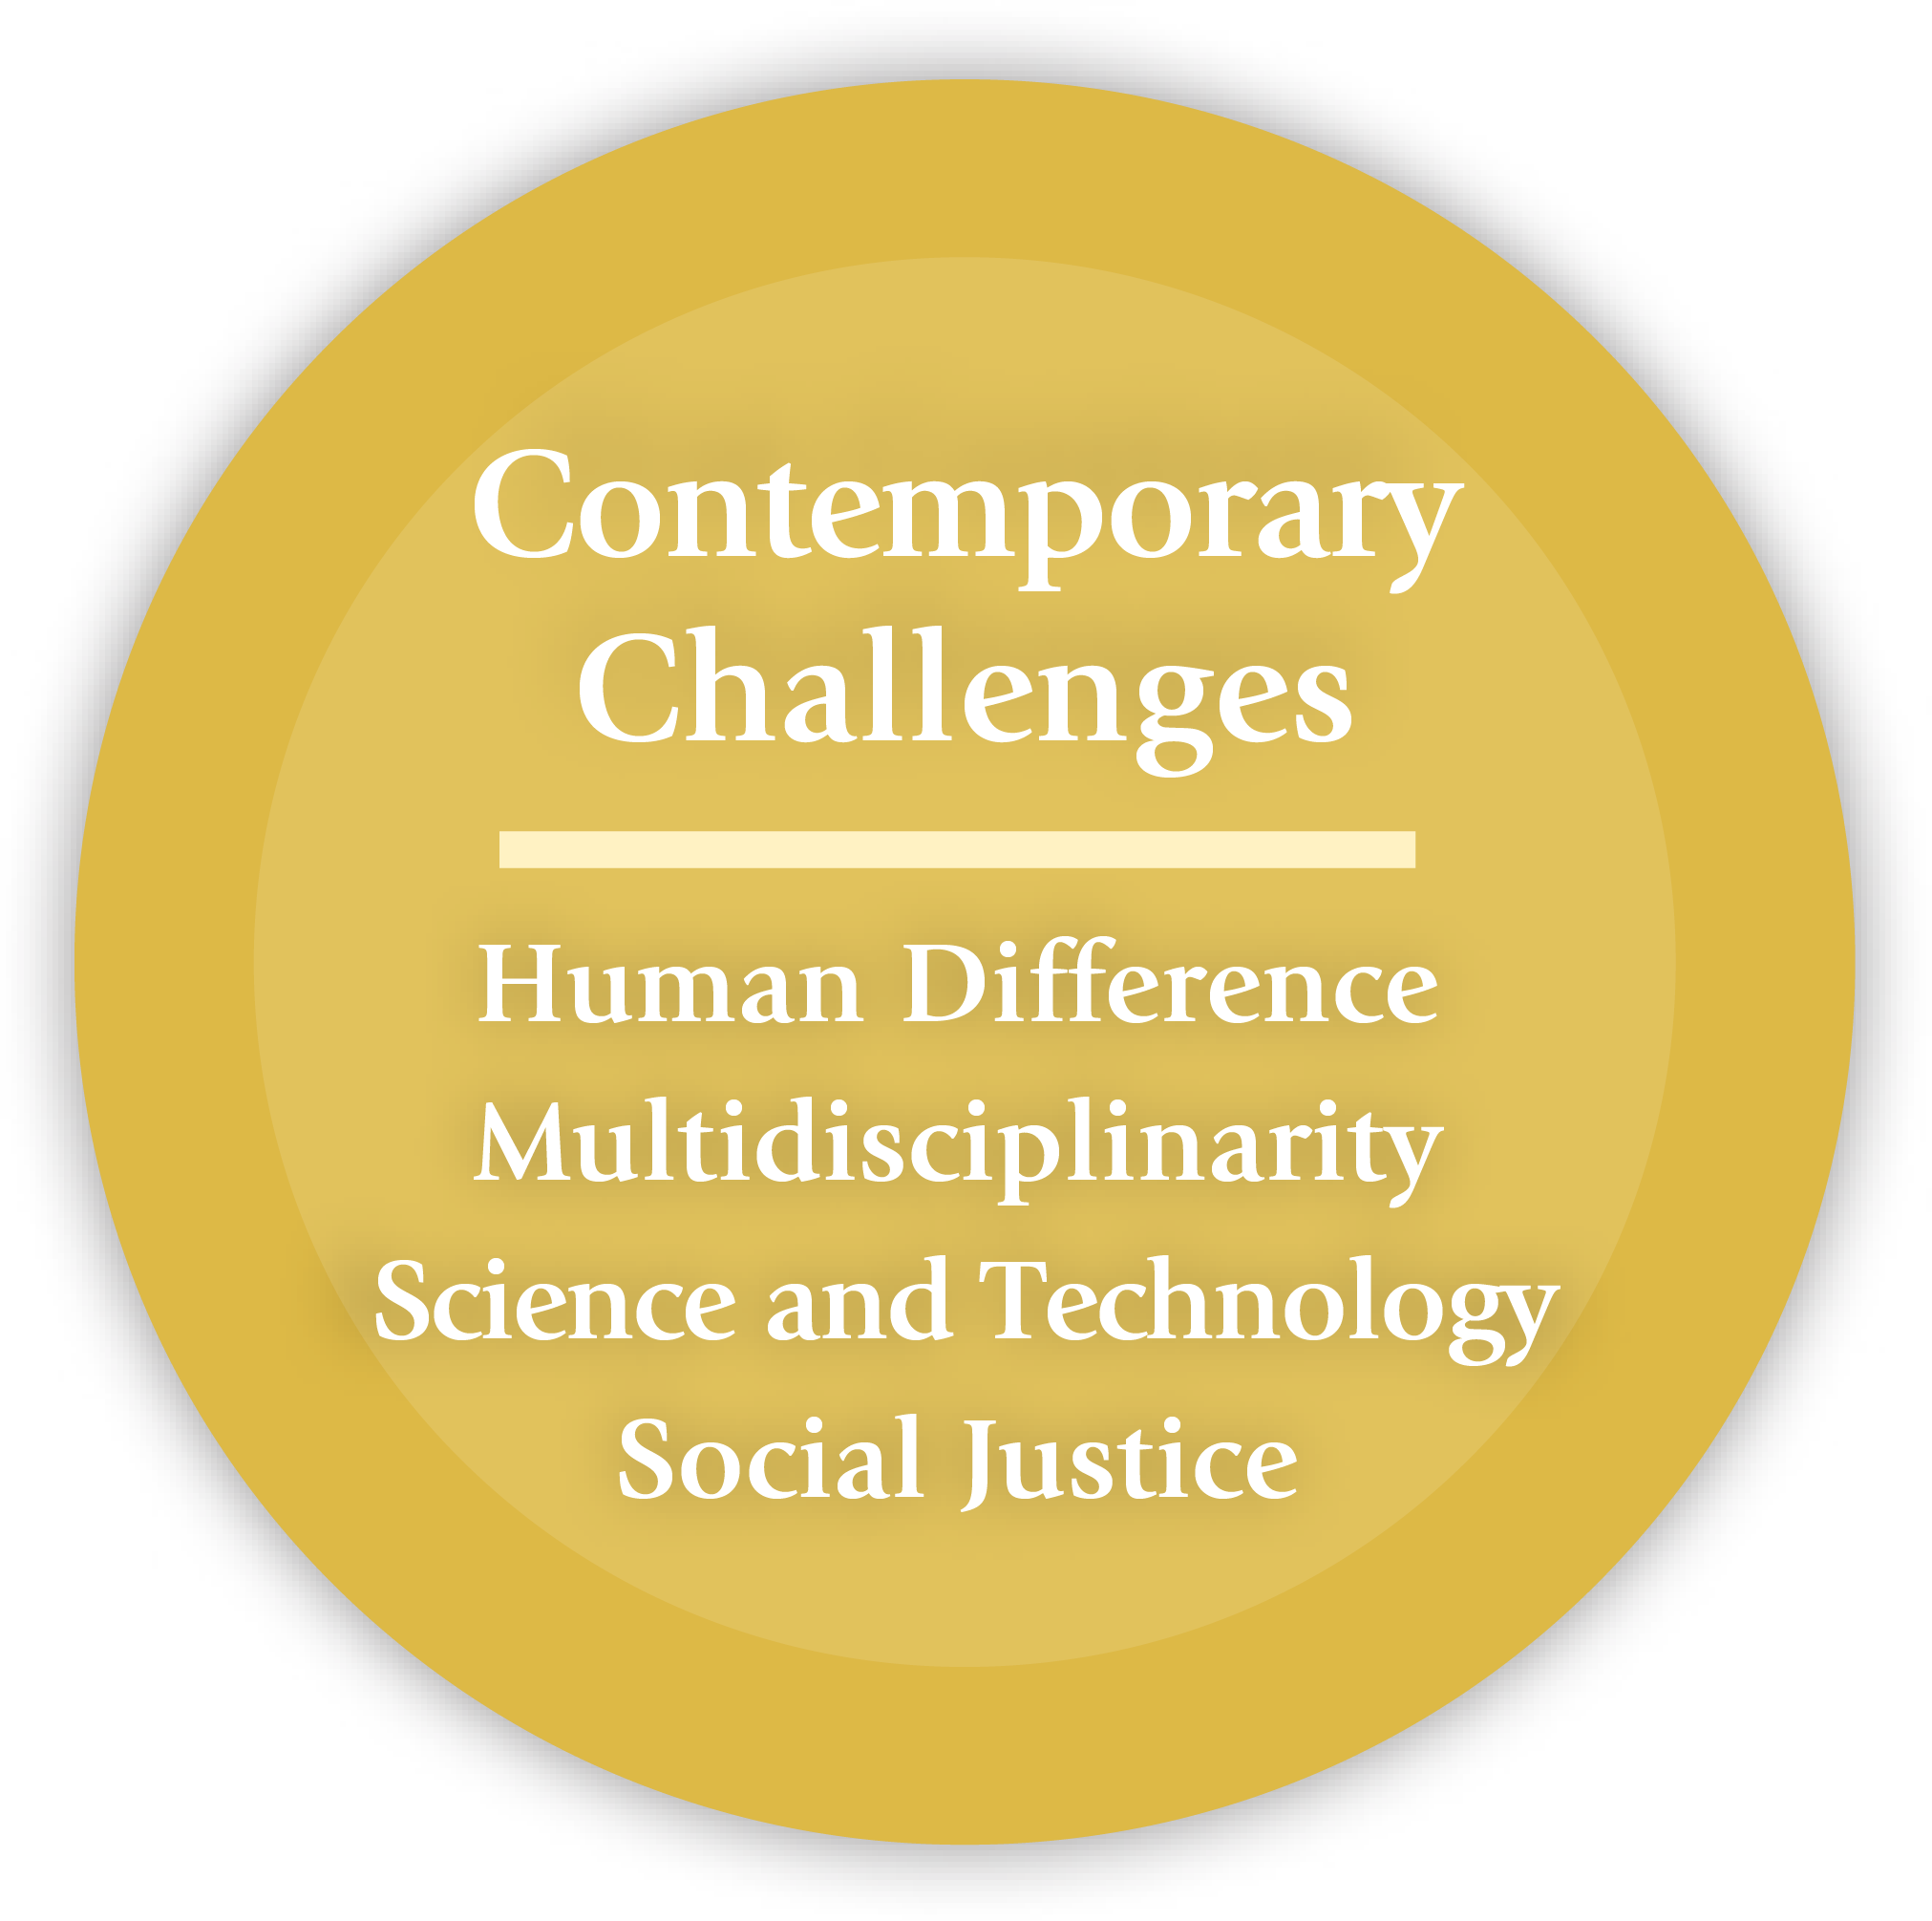 Contemporary Challenges: Human Difference; Multidisciplinarity; Science and Technology; Social Justice